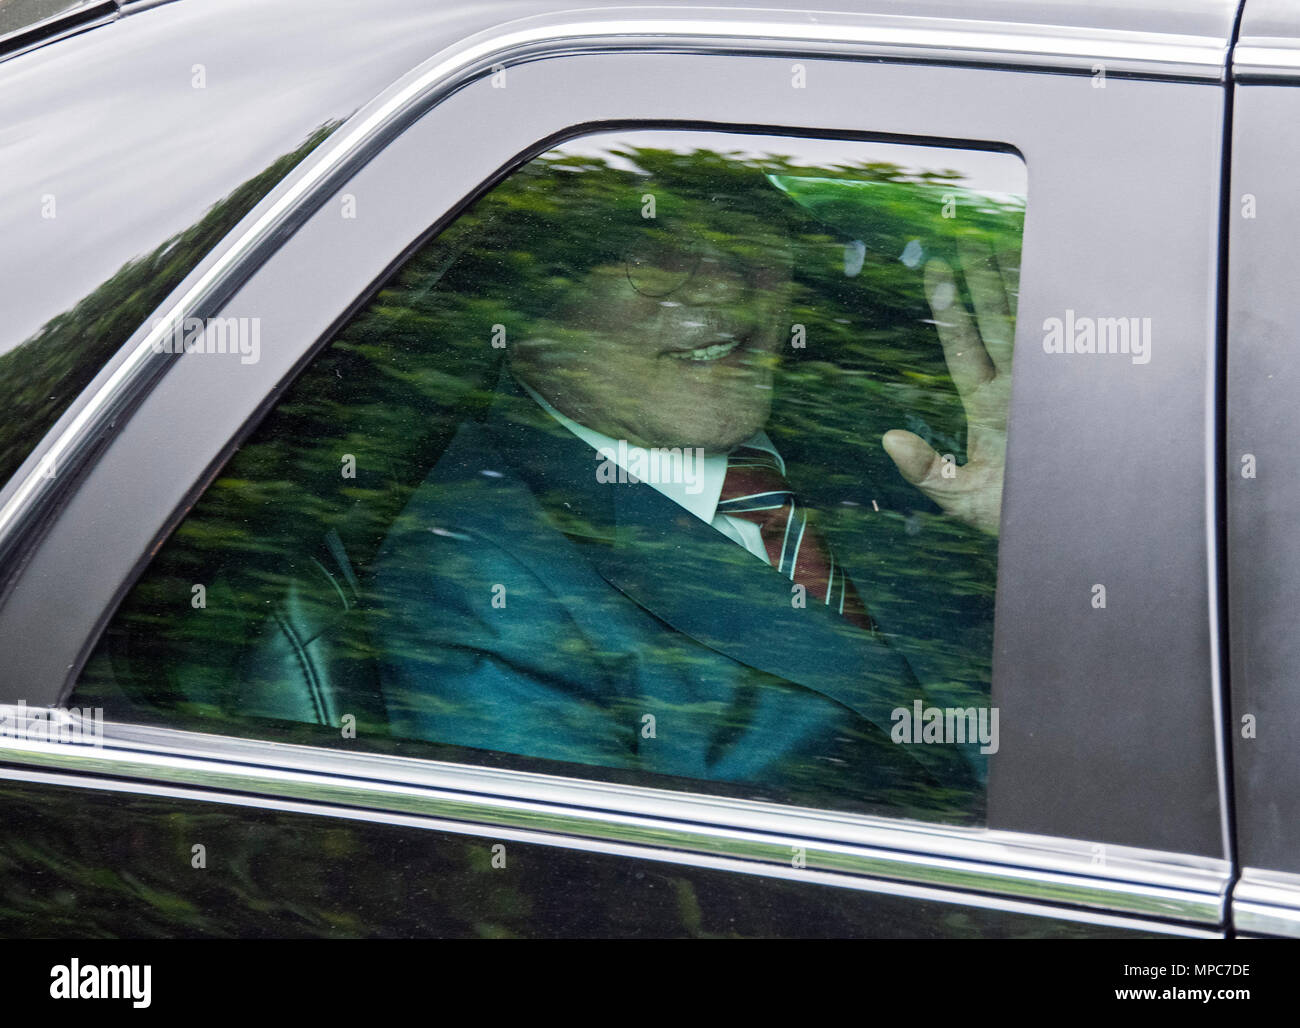 Singapore. 12th June, 2018. President Moon Jae-in of South Korea departs after meeting United States President Donald J. Trump for talks at the White House in Washington, DC on Tuesday, May 22, 2018. The two leaders are meeting ahead of President Trump's scheduled summit with Kim Jung-un of North Korea which is tentatively scheduled for June 12, 2018 in Singapore. Credit: Ron Sachs/CNP | usage worldwide Credit: dpa/Alamy Live News - Stock Image